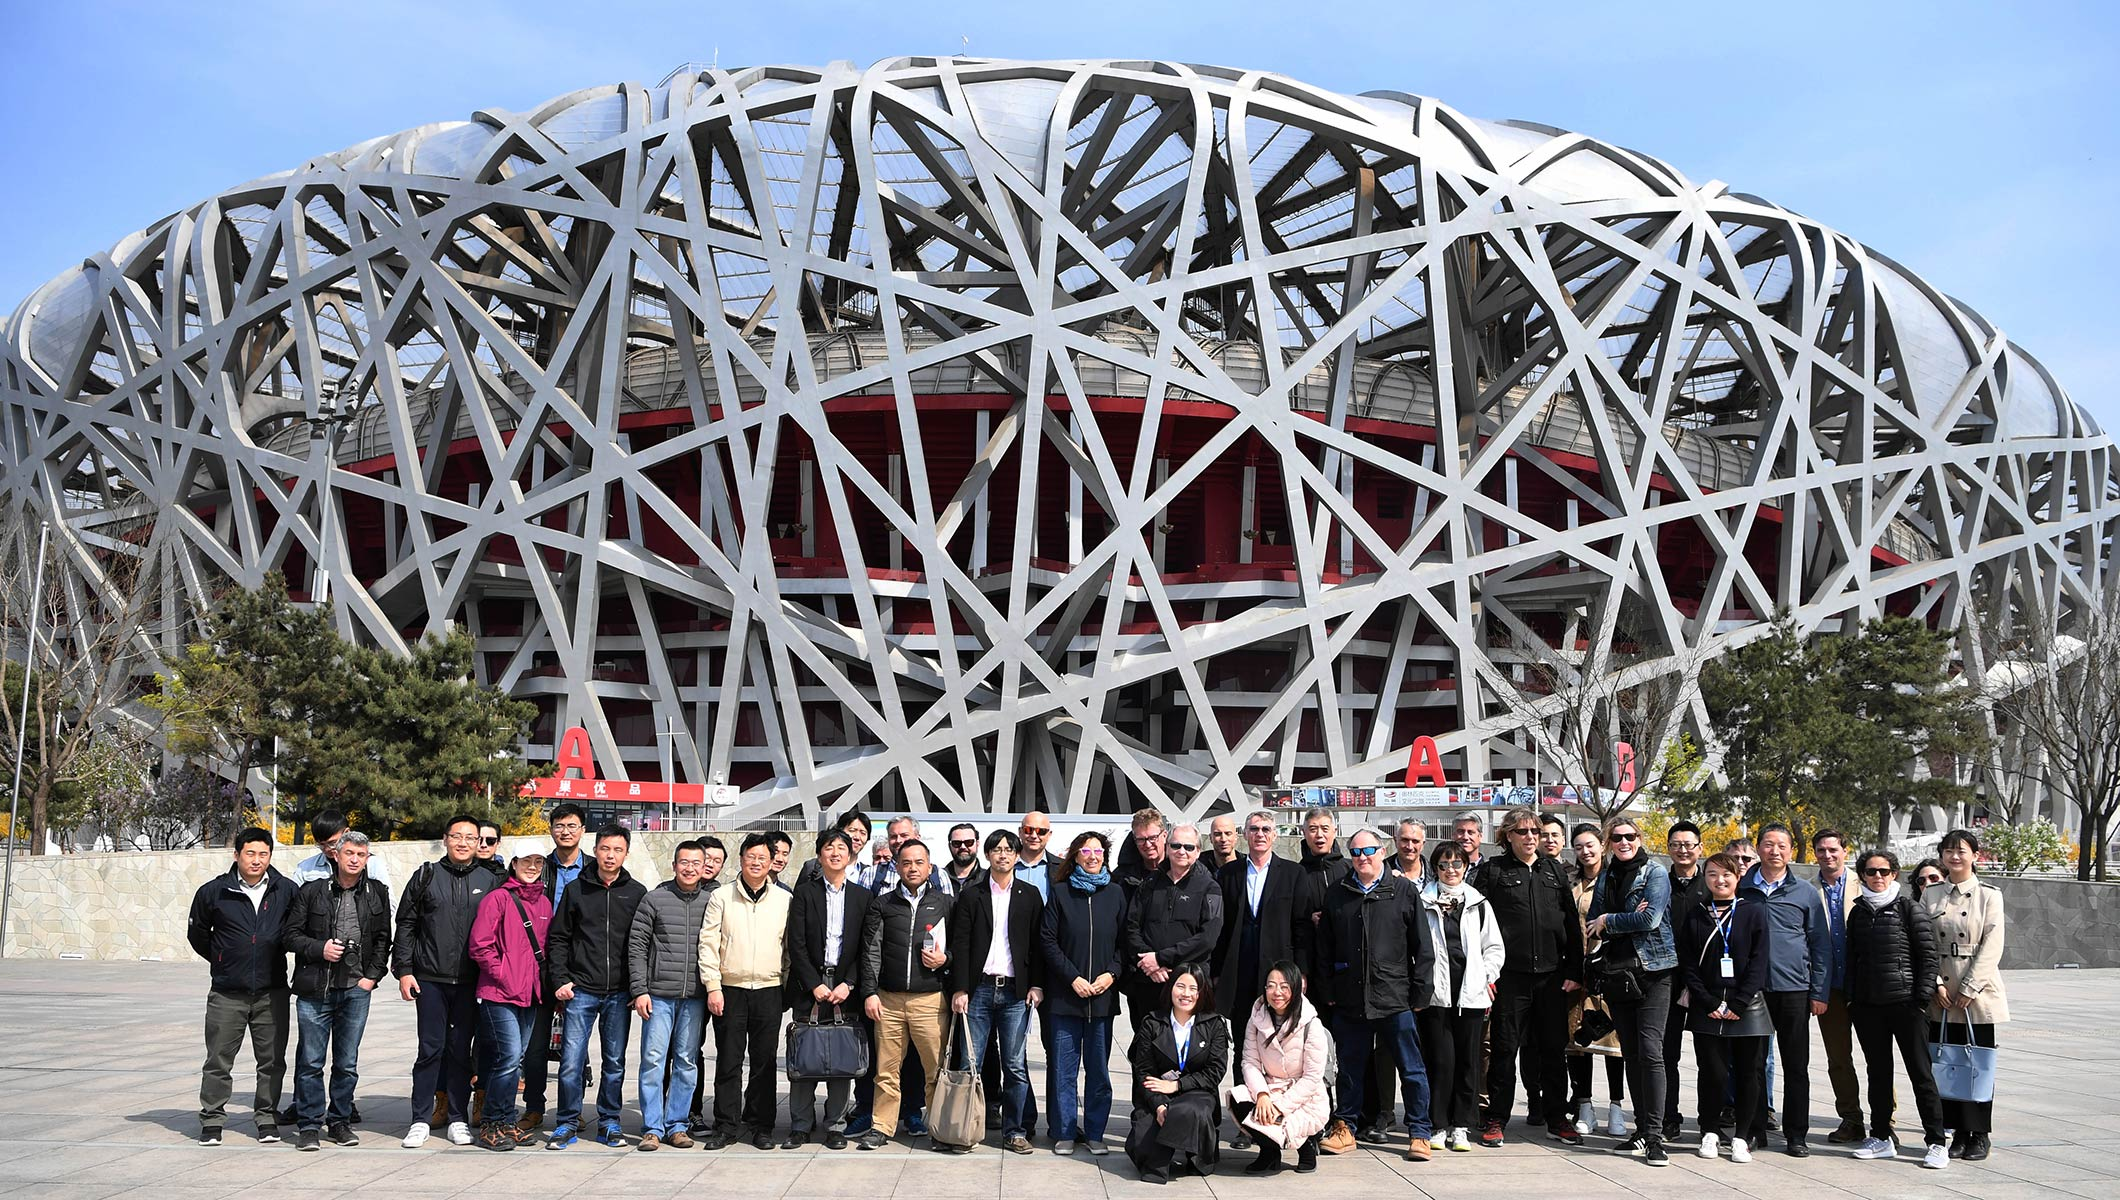 Beijing 2022 holds 1st World Agency Meeting to brief media on plans to facilitate Games coverage